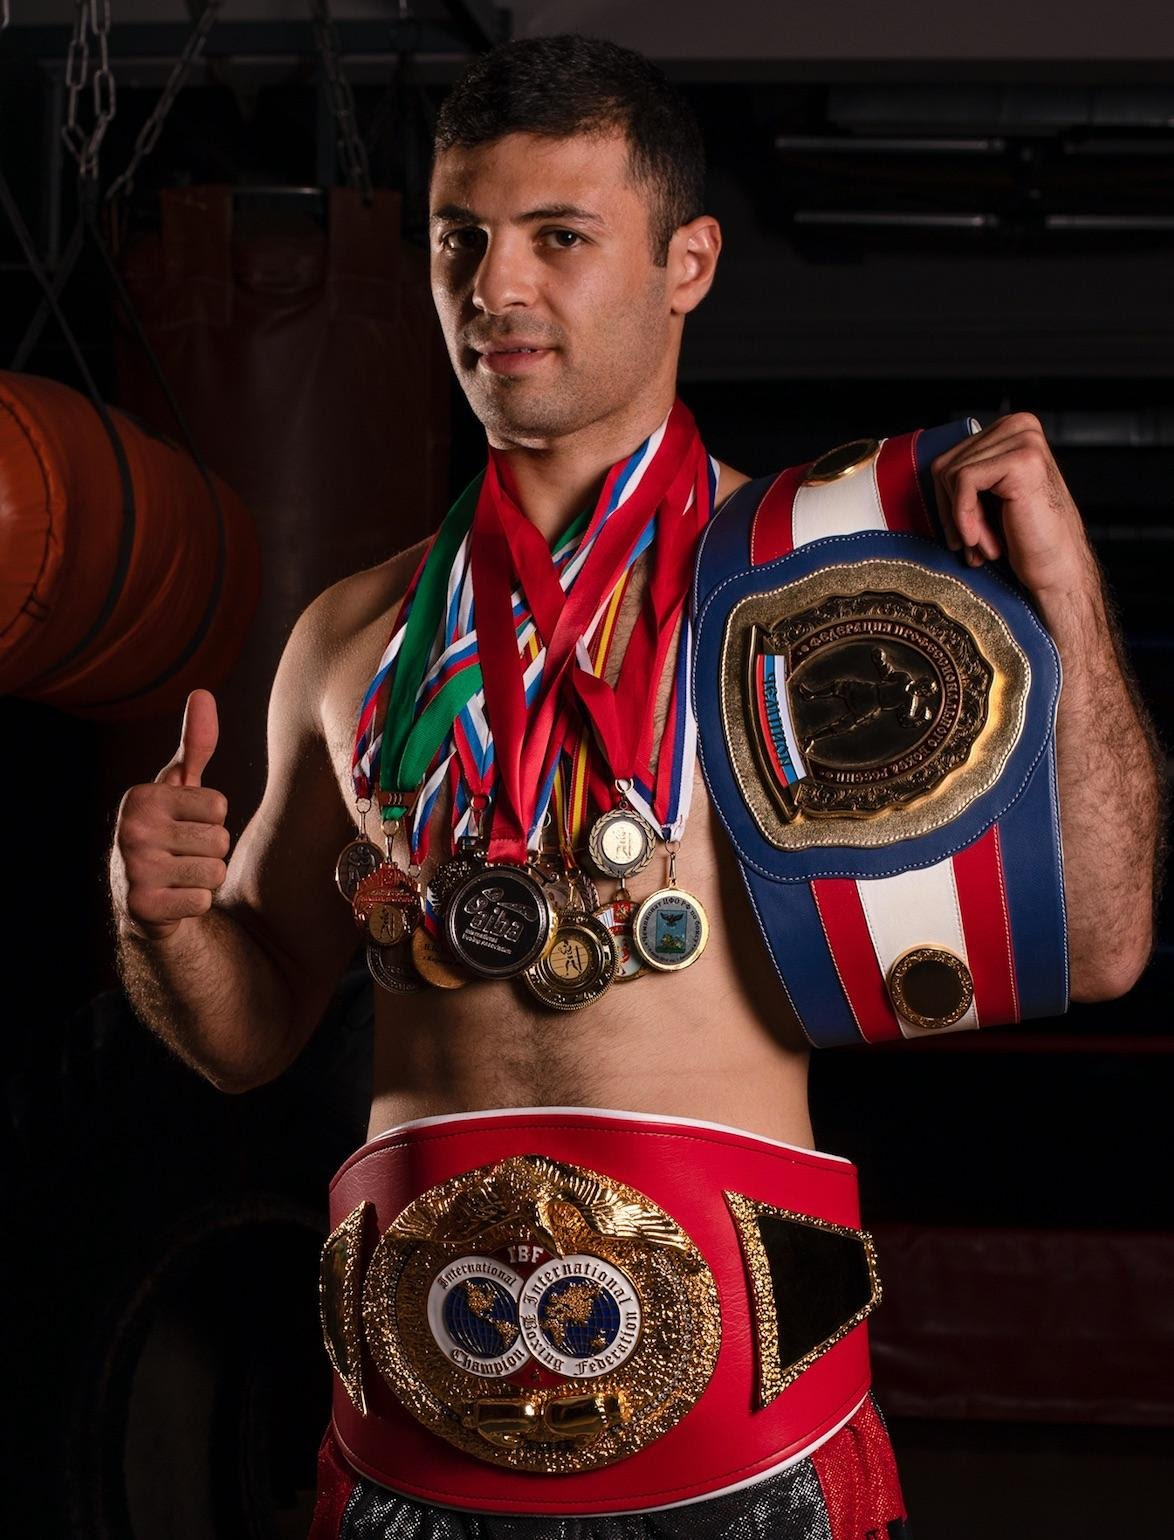 Petros Ananyan - DiBella Entertainment has signed super lightweight contender Petros Ananyan (15-2-2, 7 KOs) to an exclusive promotional agreement.